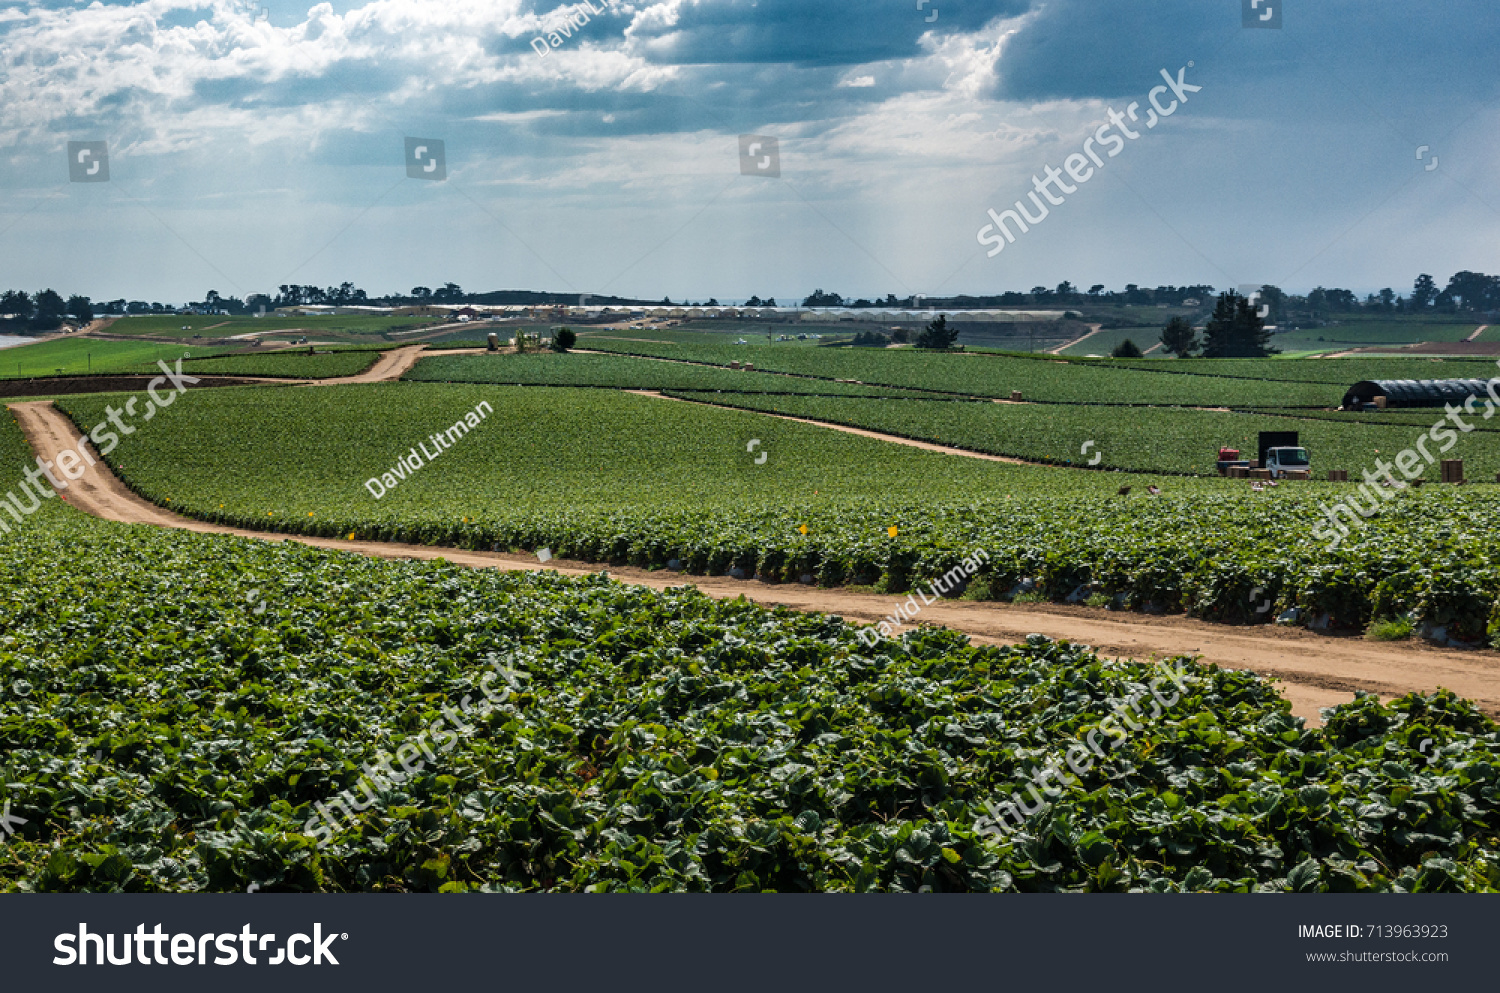 A field of strawberry crops growing in central California, as a storm approaches.  California grows more than 2 billion pounds of strawberries per year.